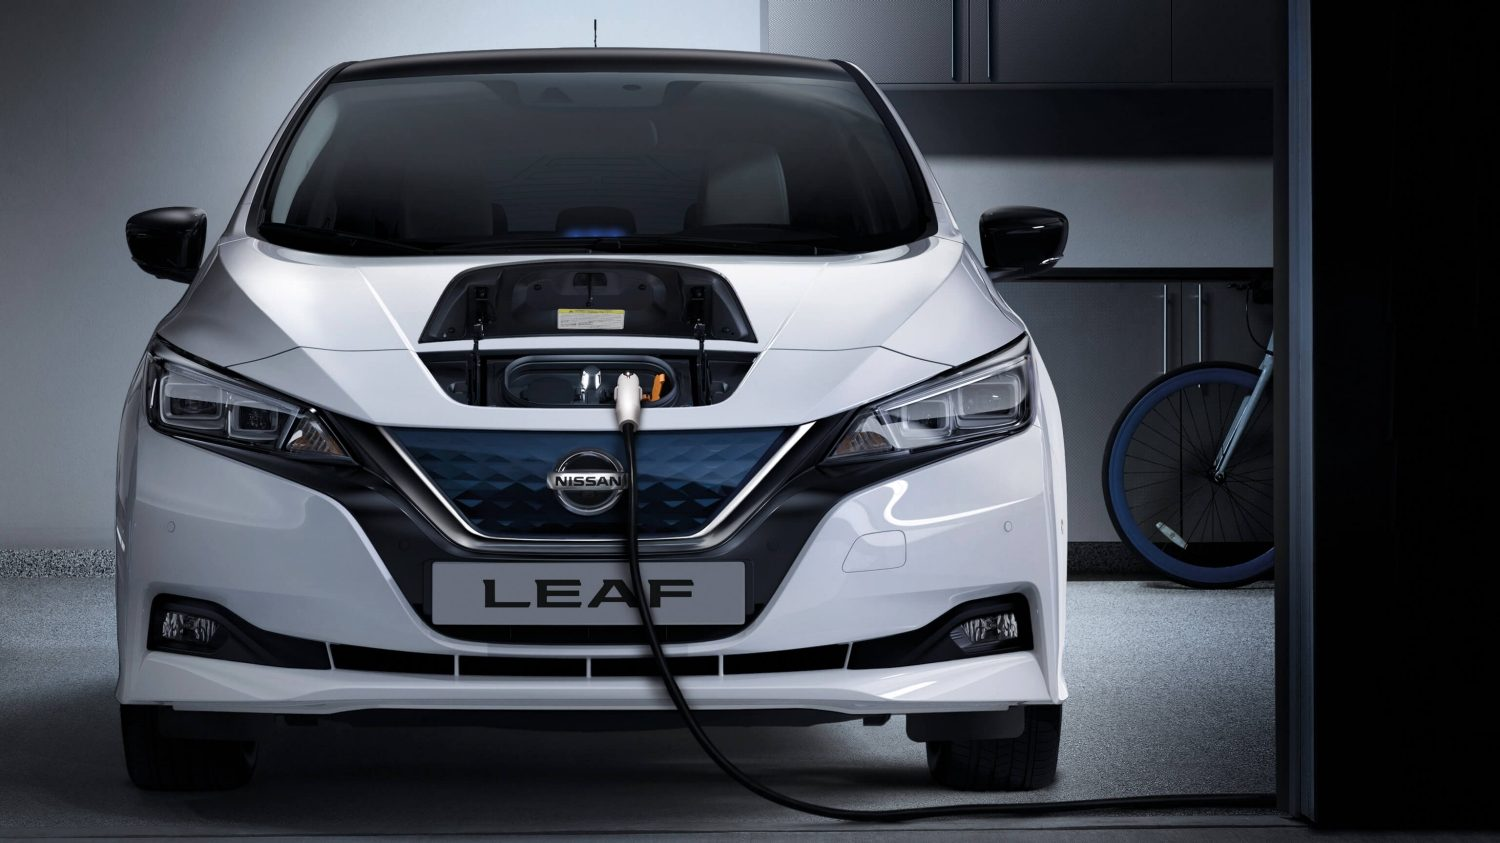 Nya Nissan LEAF – Laddbox